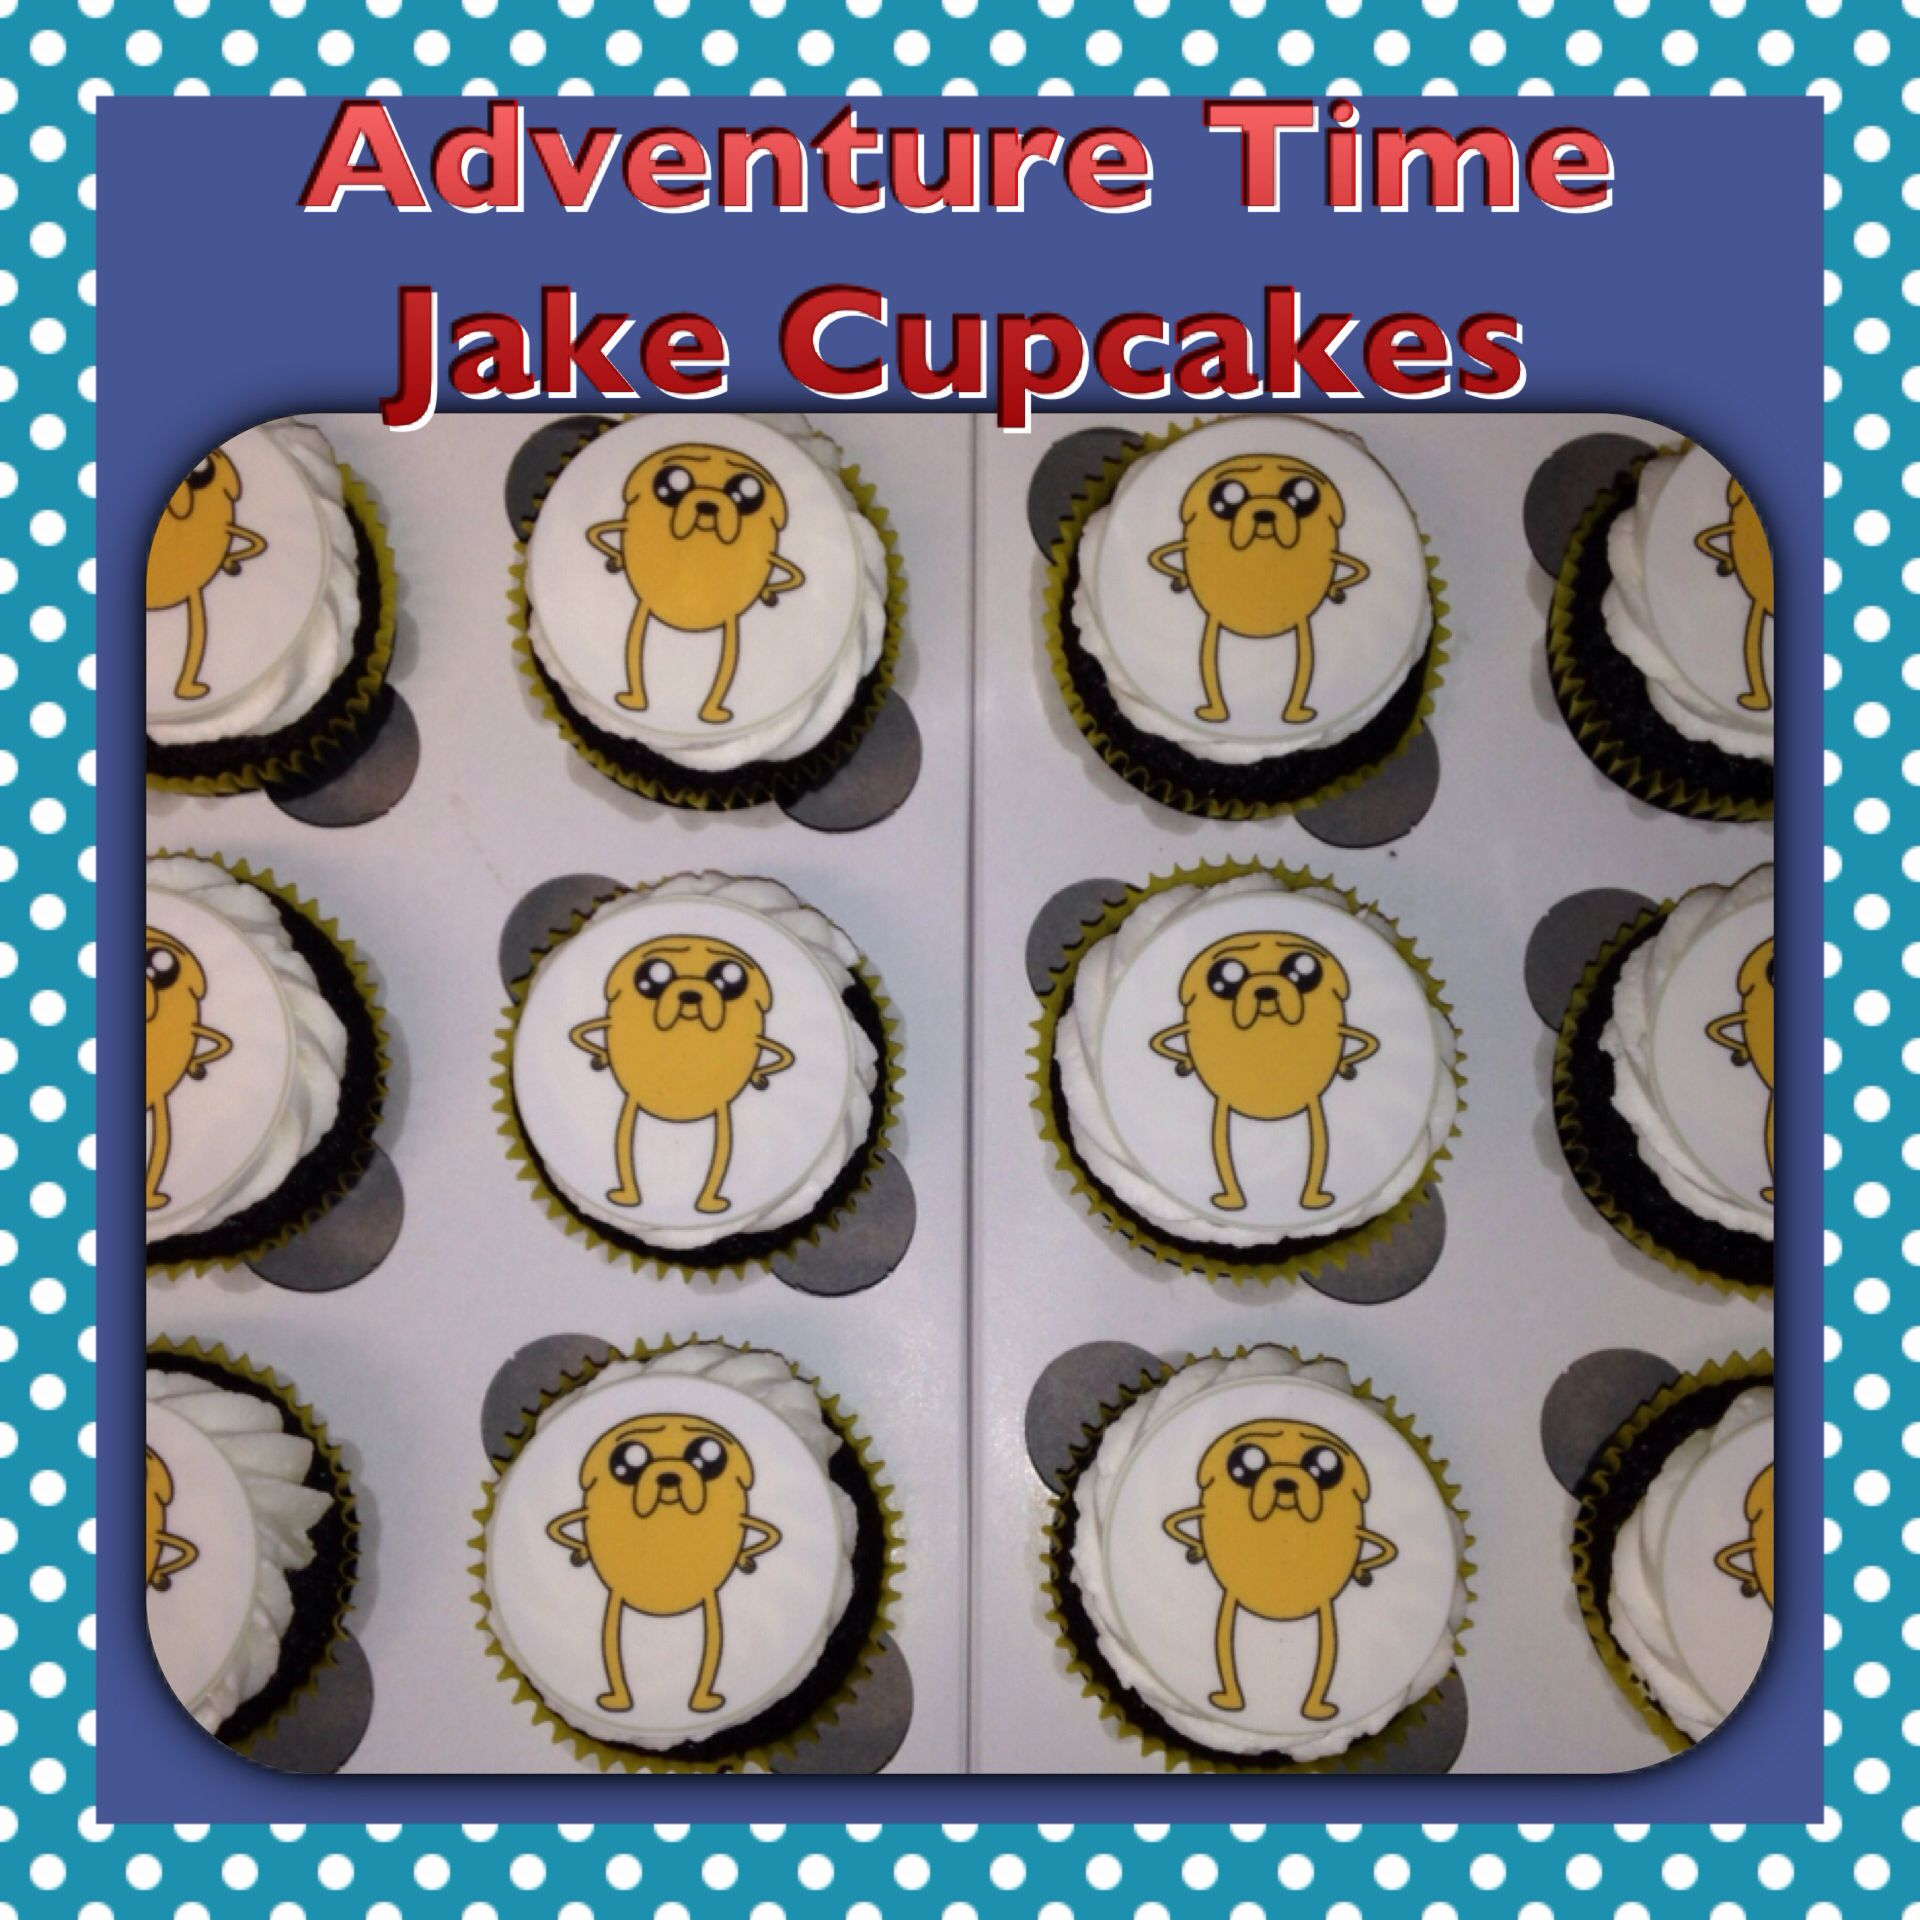 Adventure Time Jake Cupcakes